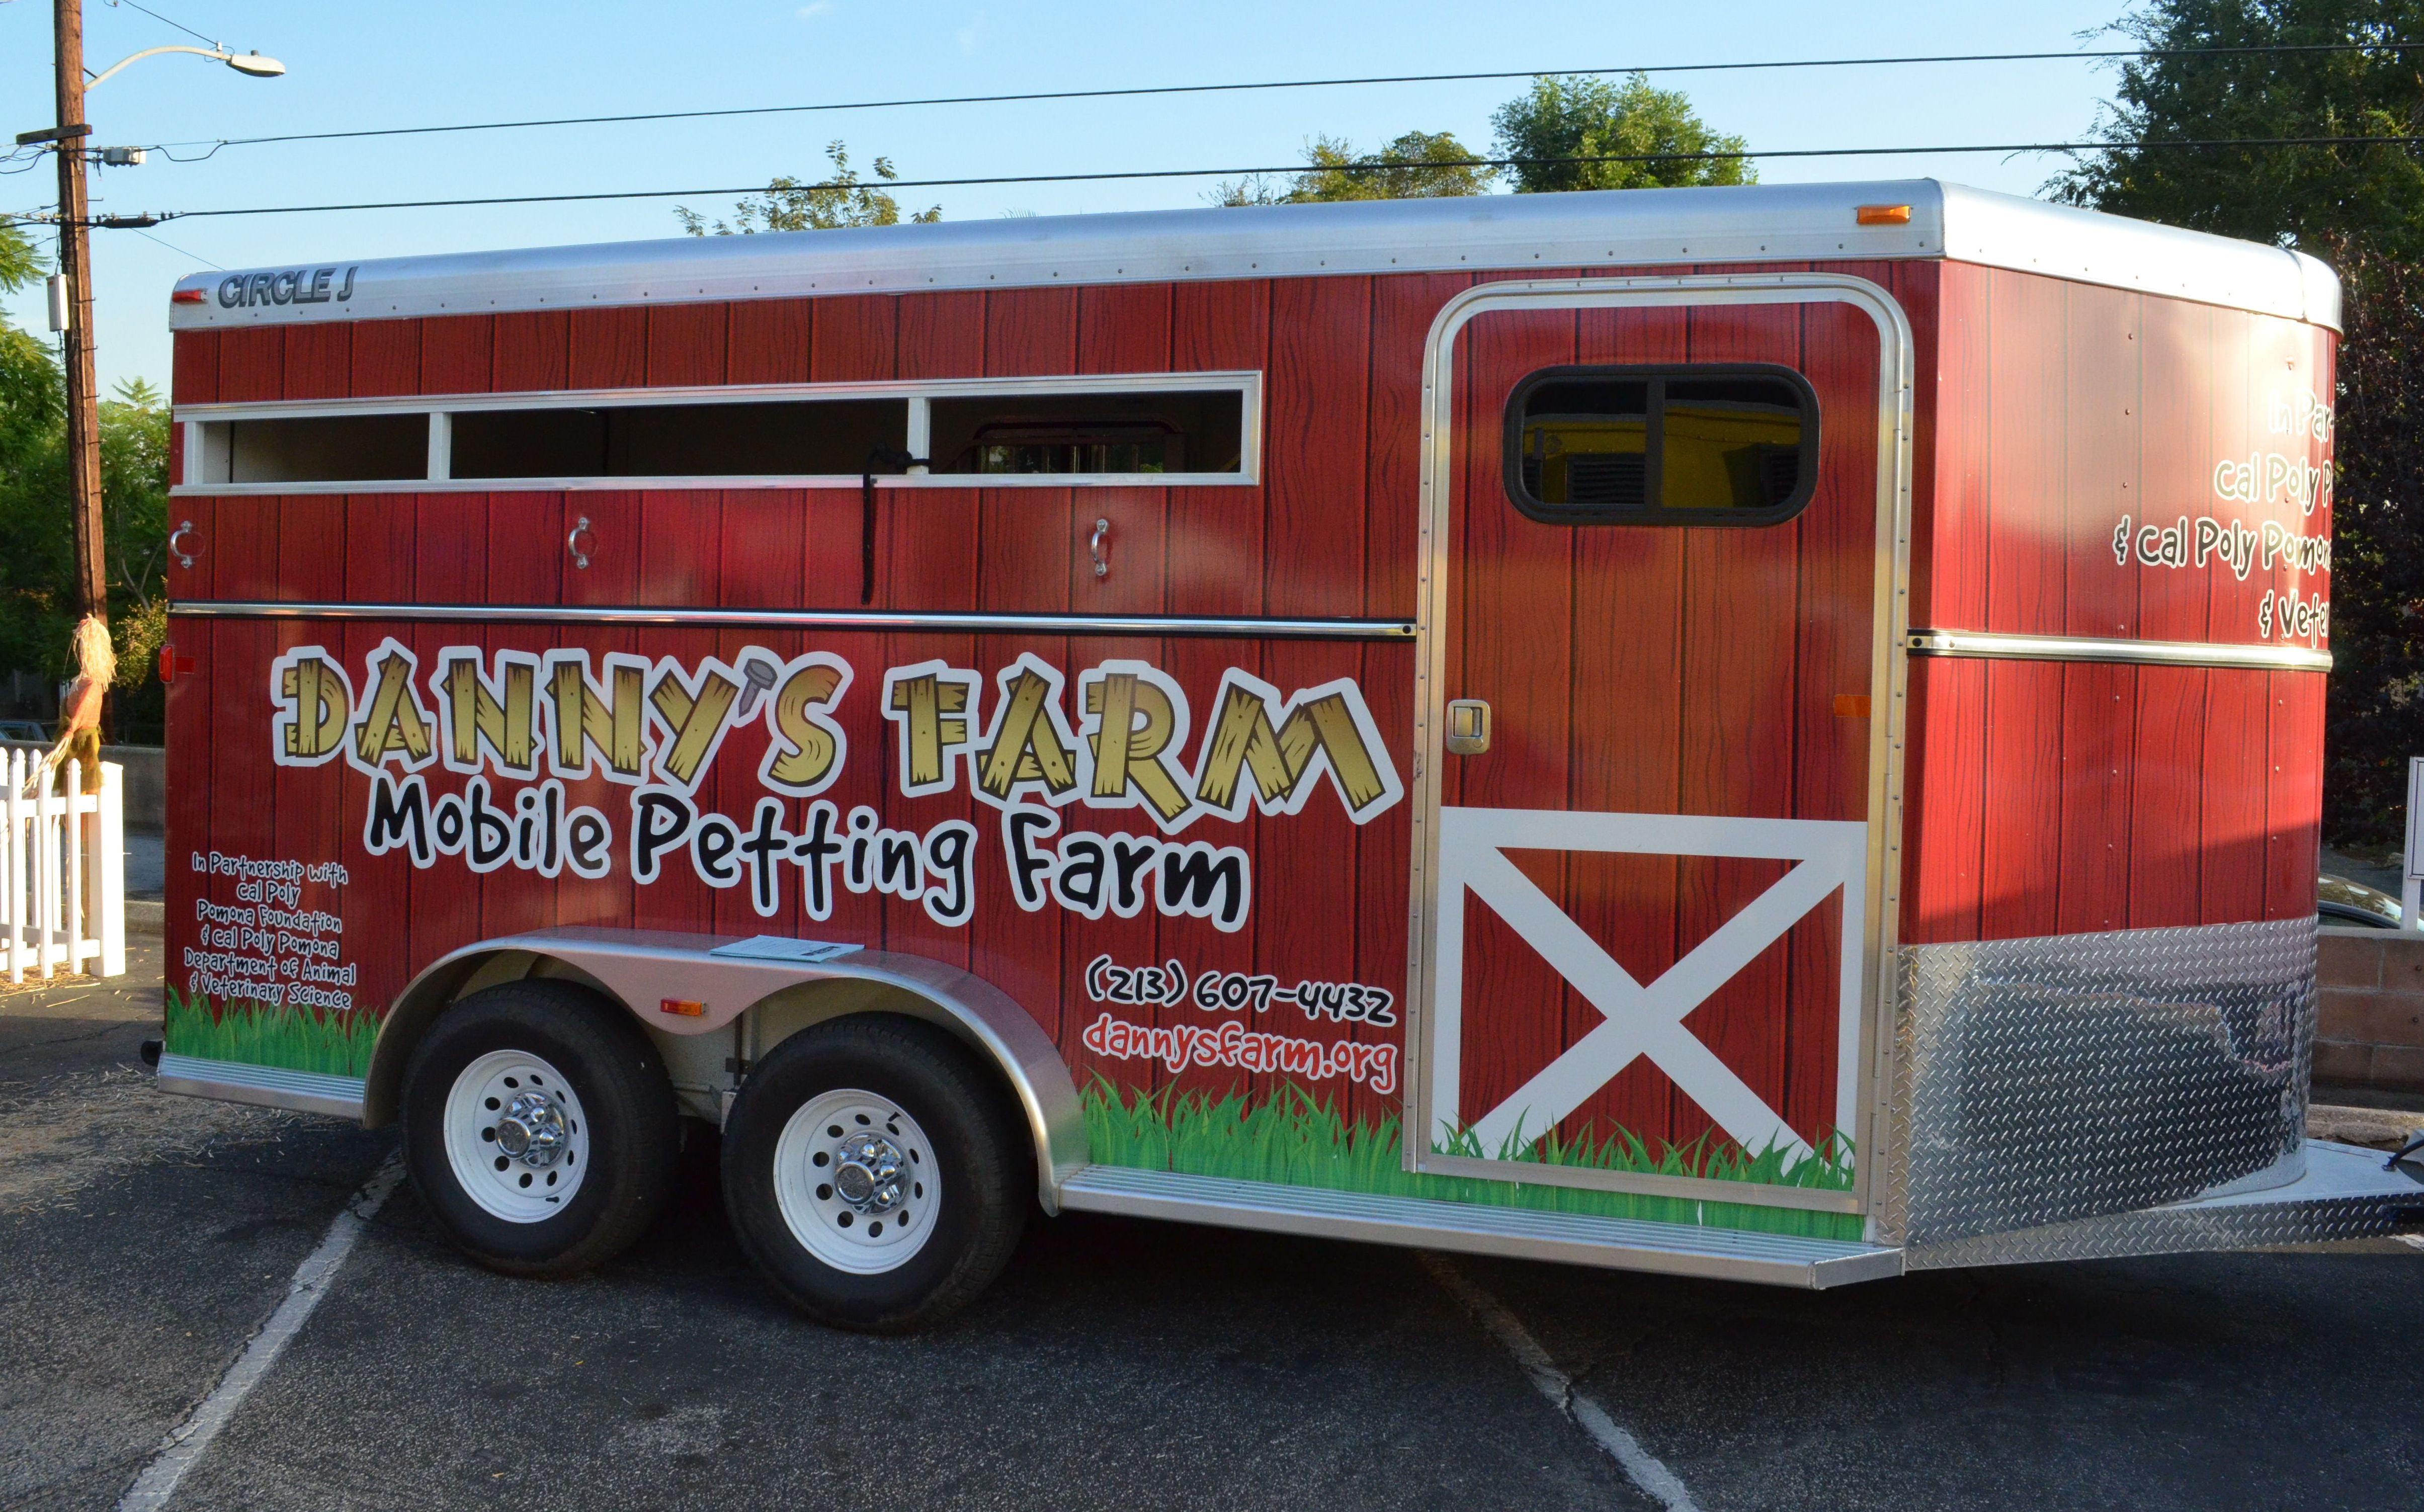 Altadenas Fancy Food Truck Fridays Will Be Hosting Dannys Farm Special Pumpkins For Kids Pick Out Your Annual Pumpkin While Visiting The Petting